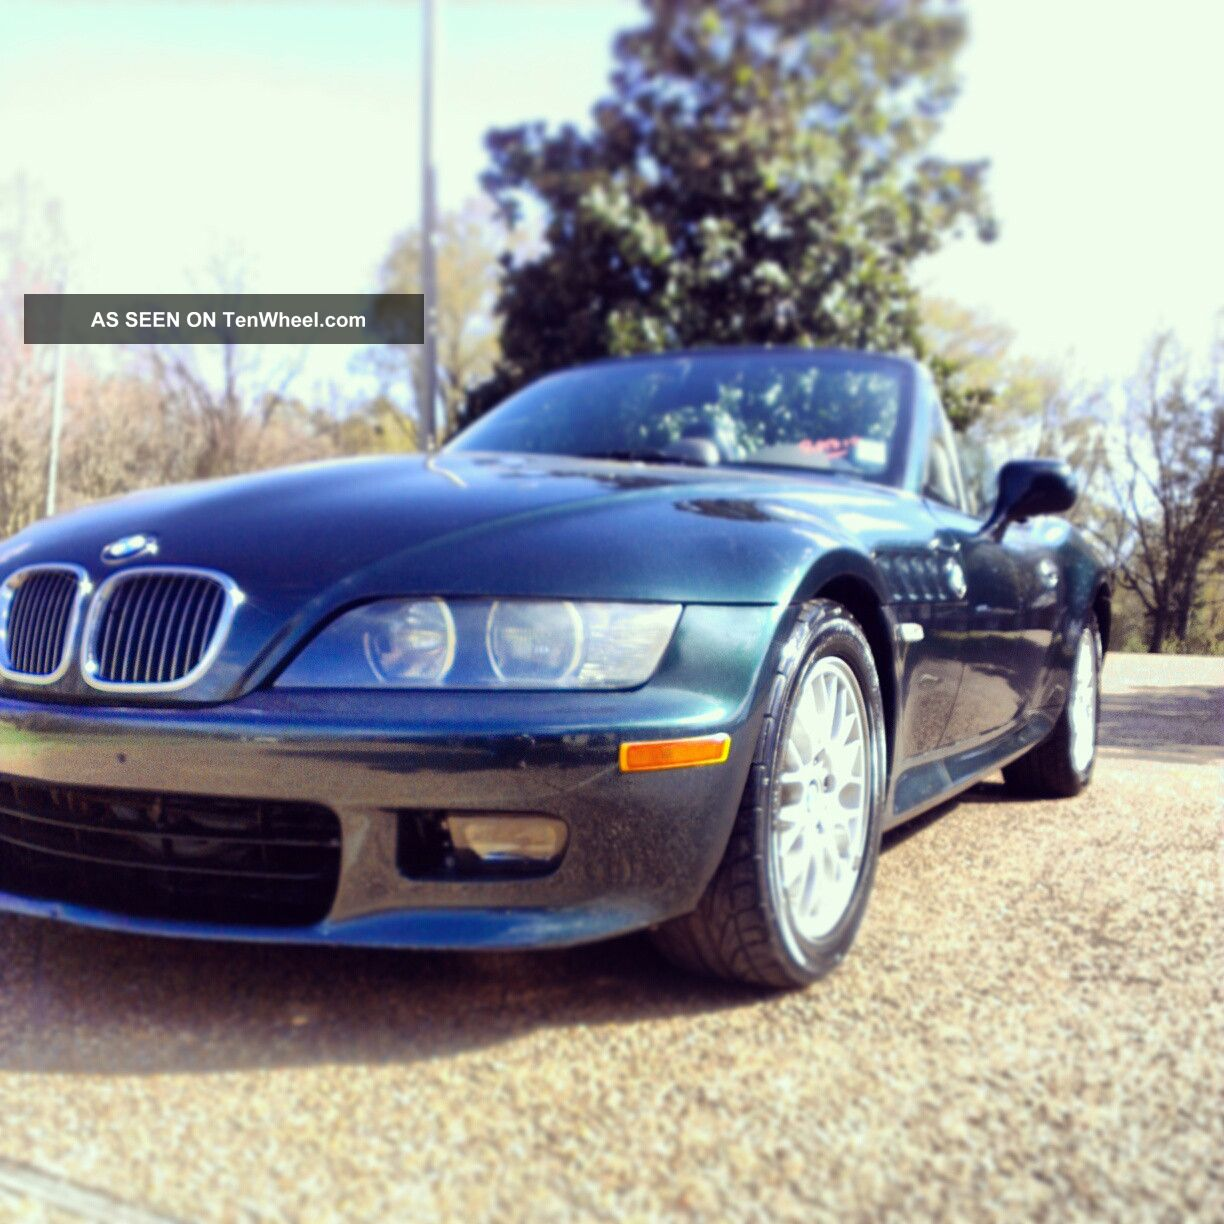 Bmw Z3 2 3: 3 Day Special 2000 Bmw Z3 Roadster Convertible 2